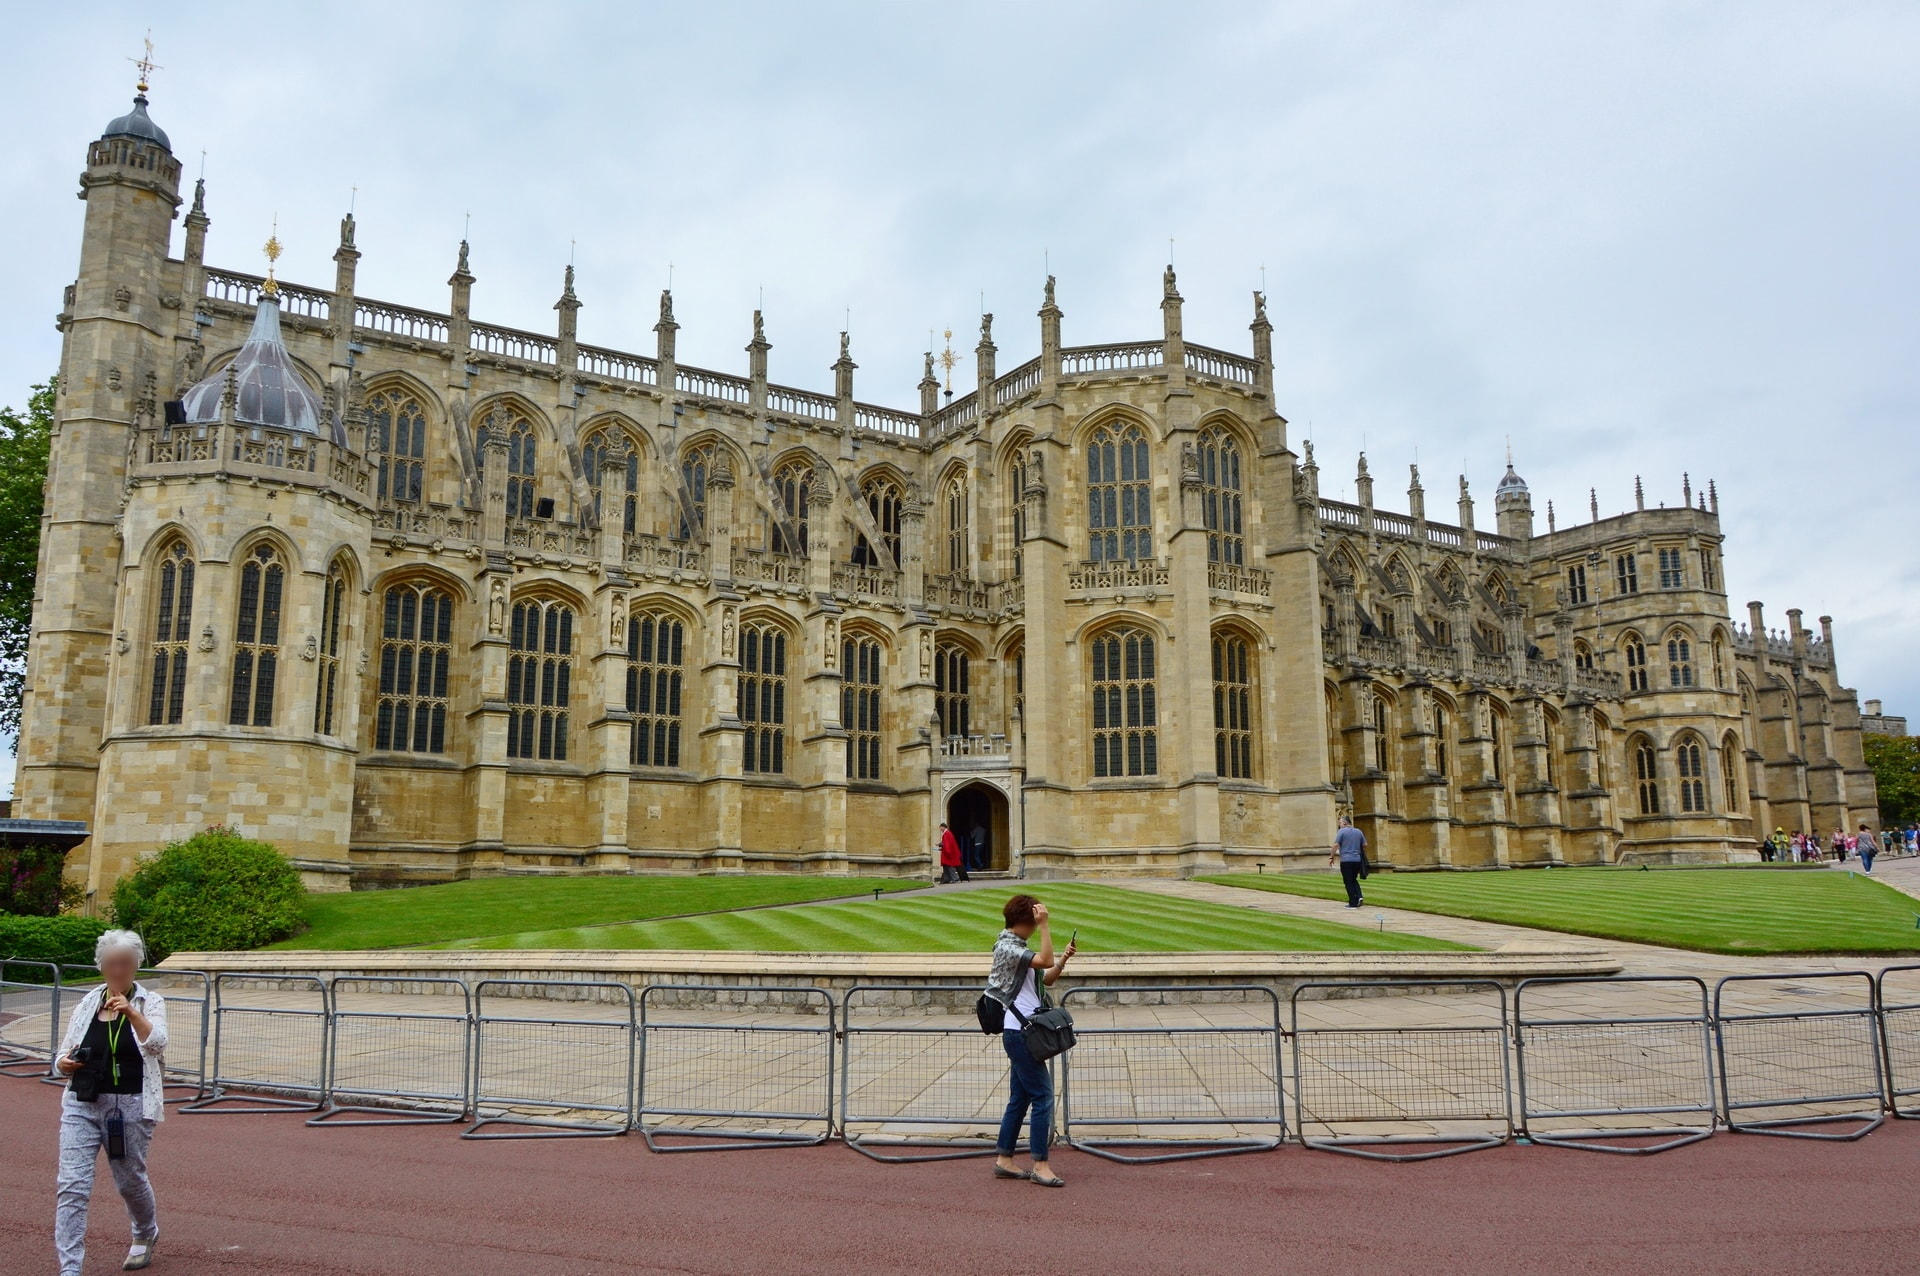 St. George's Chapel is a popular wedding place among British monarchs